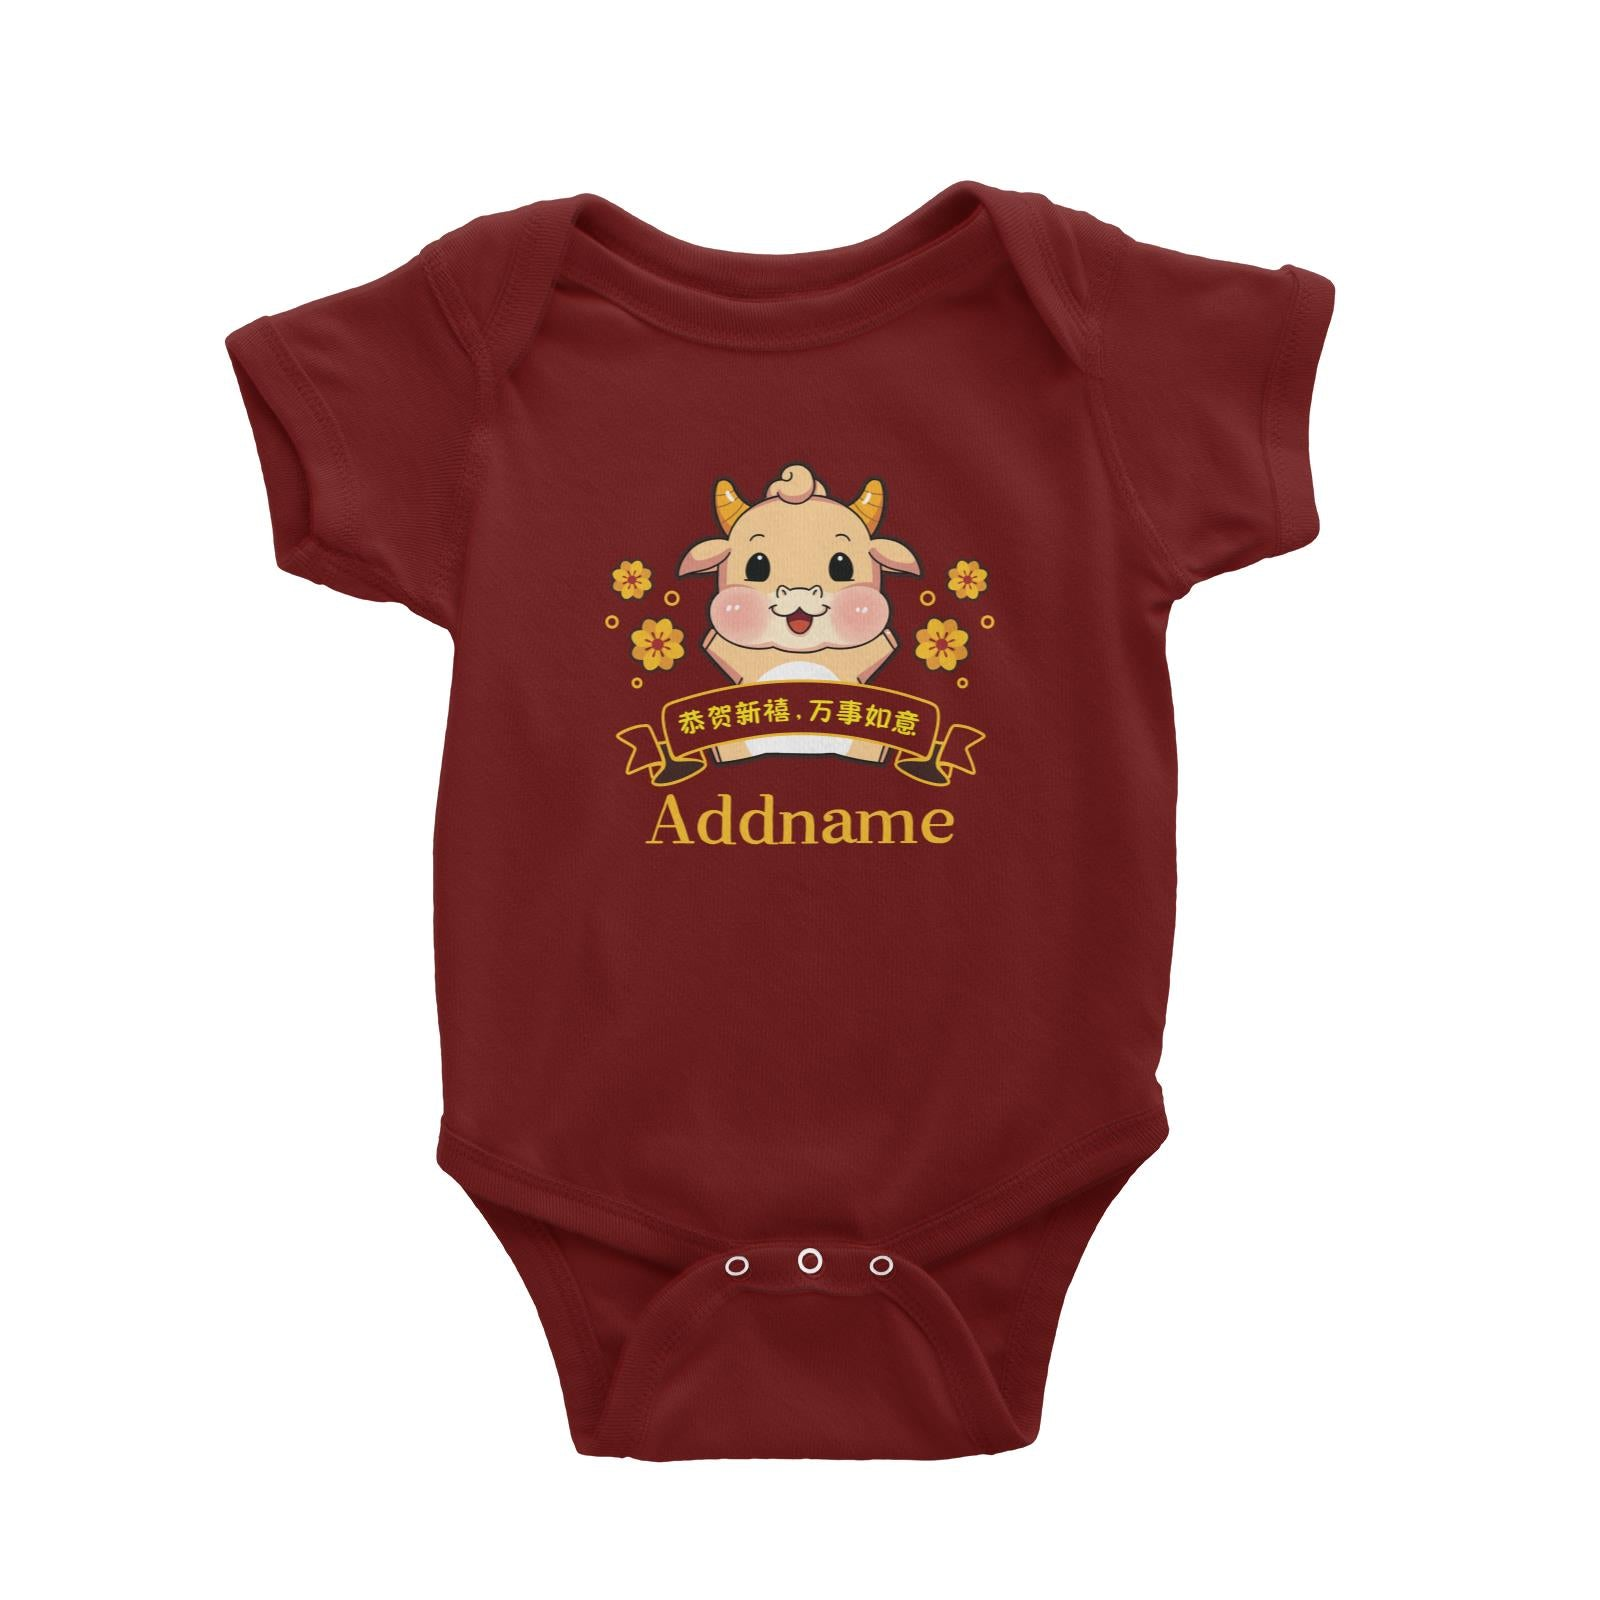 [CNY 2021] Golden Cow with Chinese New Year Wishes Baby Romper